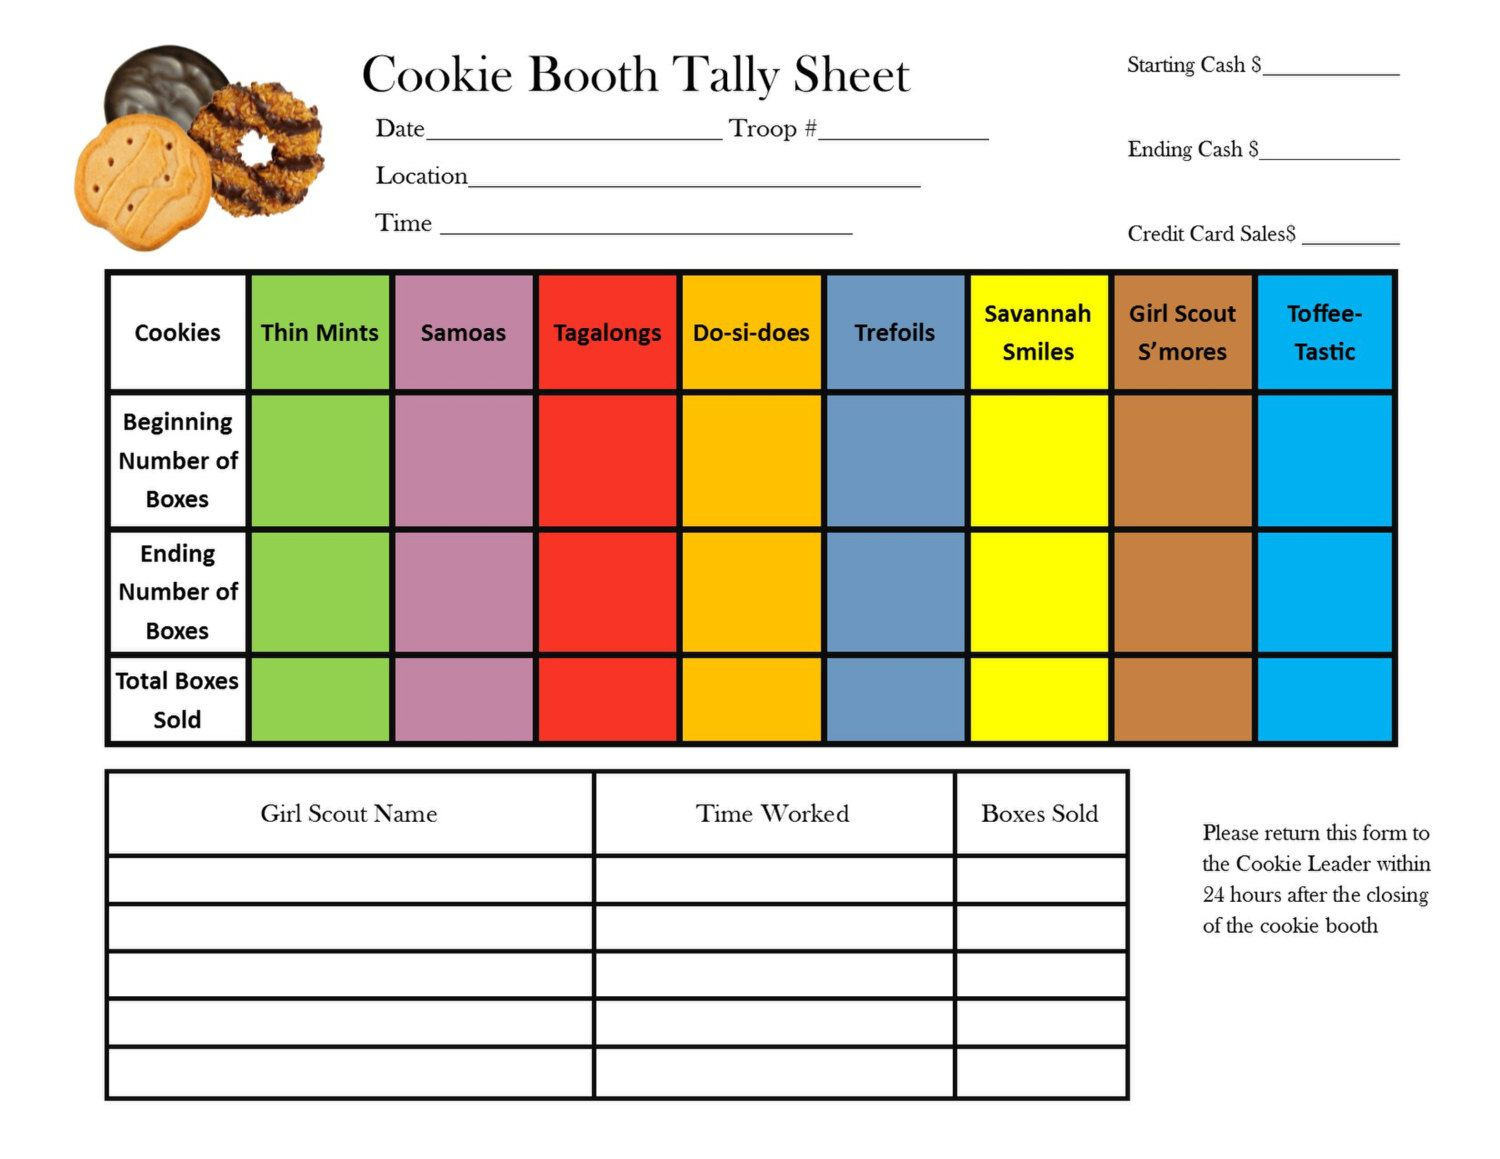 girl scout cookie booth tally sheet by troopdesigns on etsy girl scout meetings pinterest. Black Bedroom Furniture Sets. Home Design Ideas